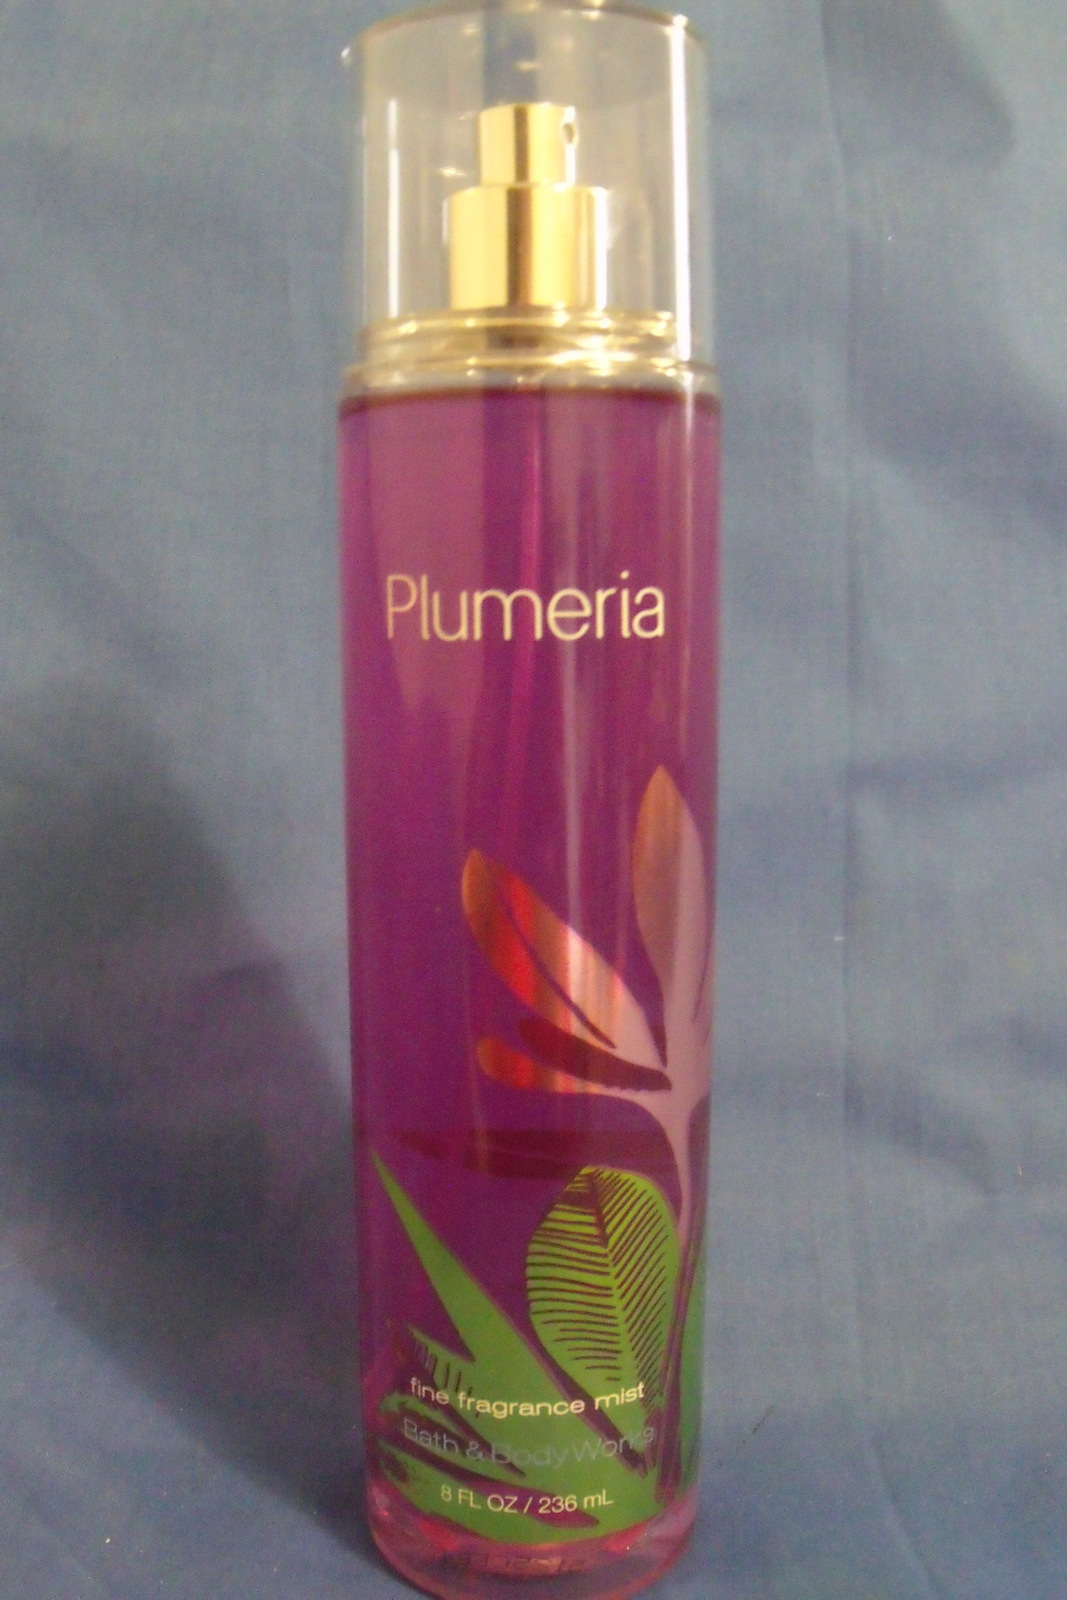 Bath and body works new plumeria fine fragrance mist 8 oz for Bath and body works scents best seller